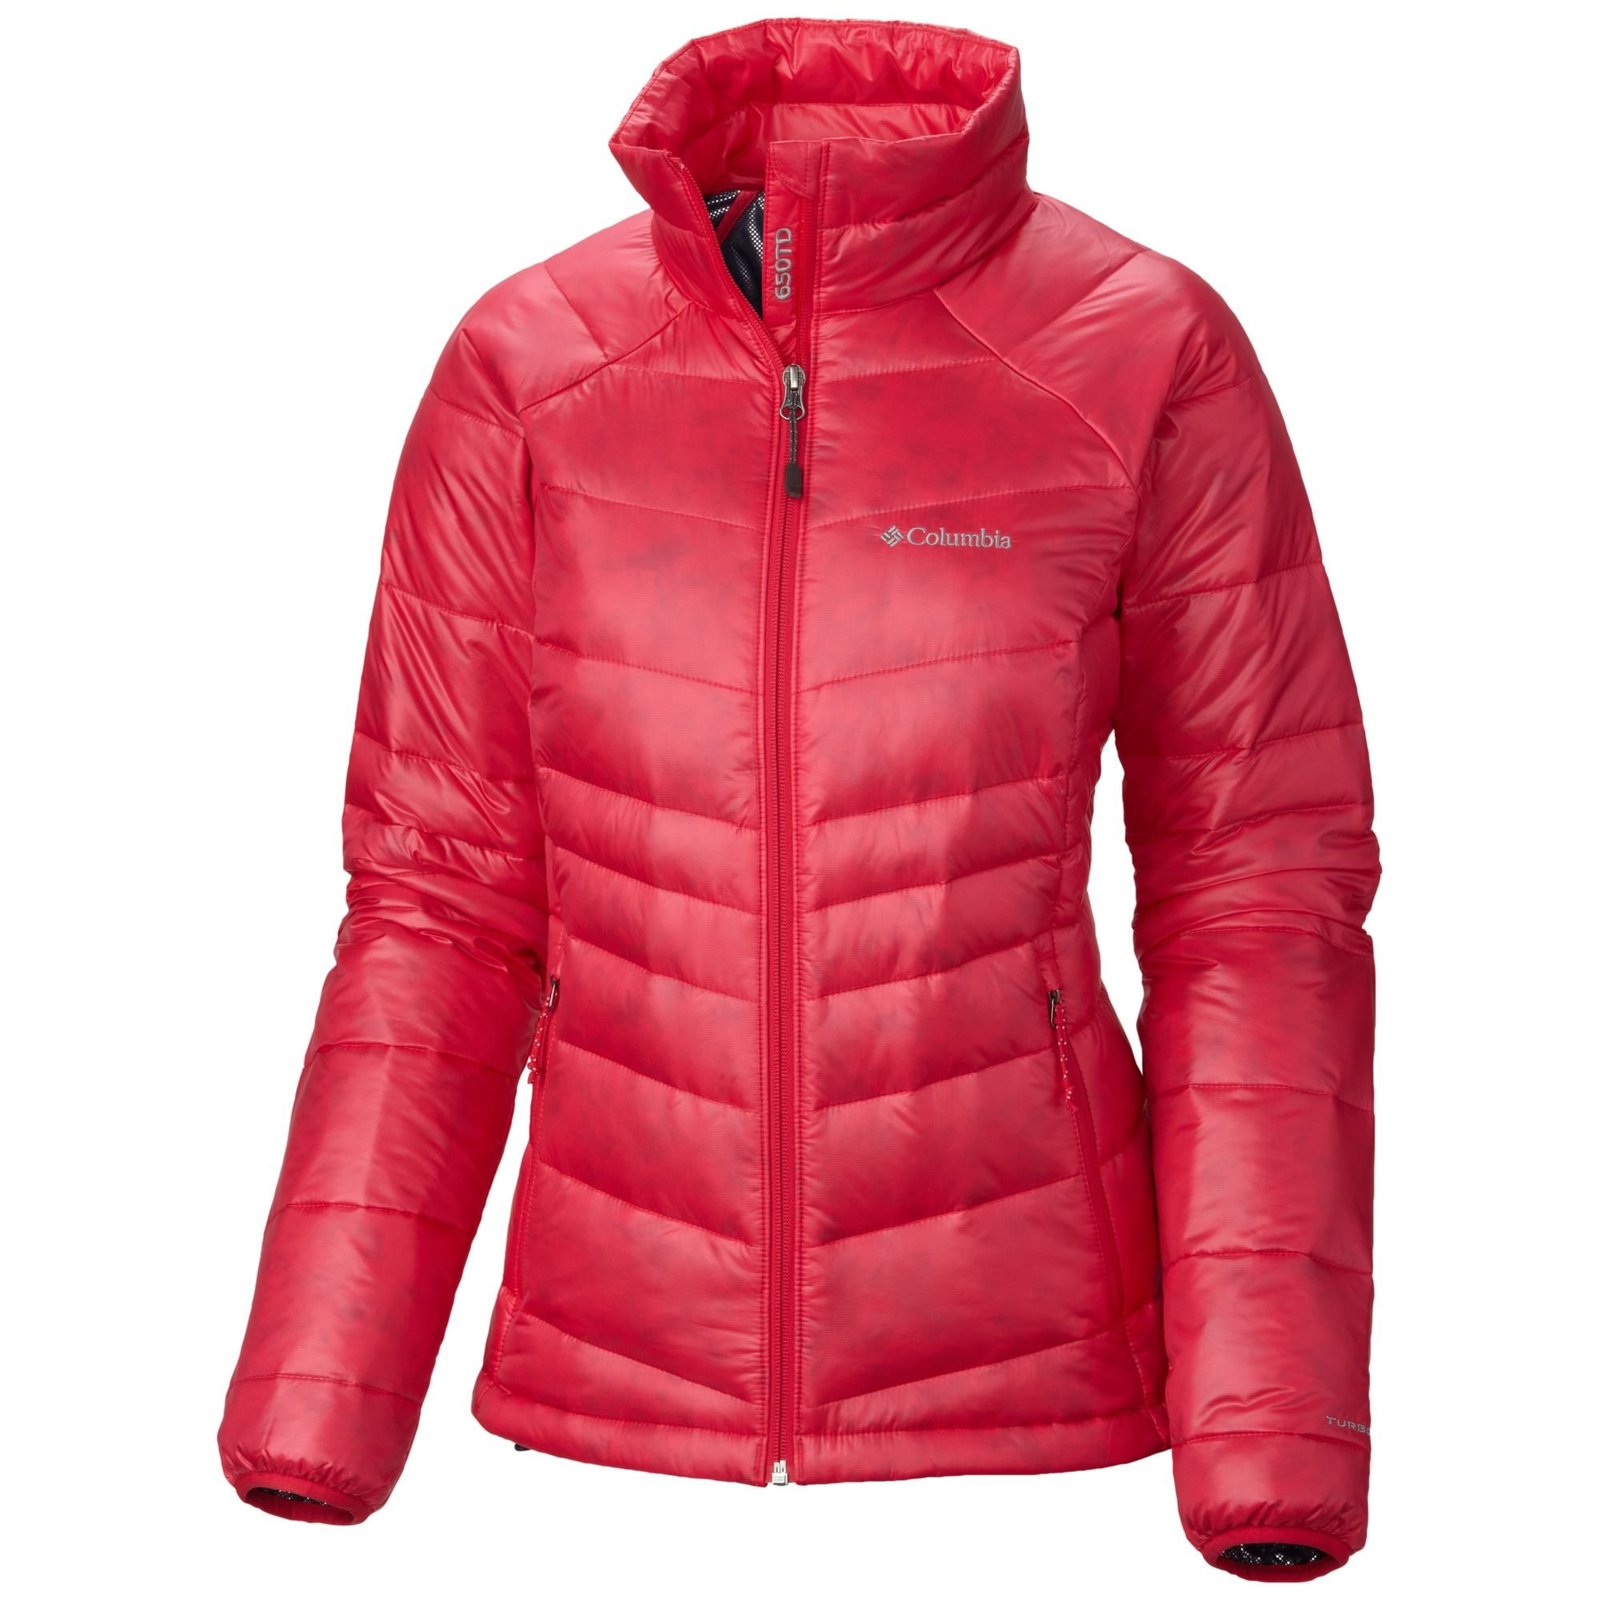 Columbia Women's Gold 650 TurboDown Down Jacket Ruby Red M